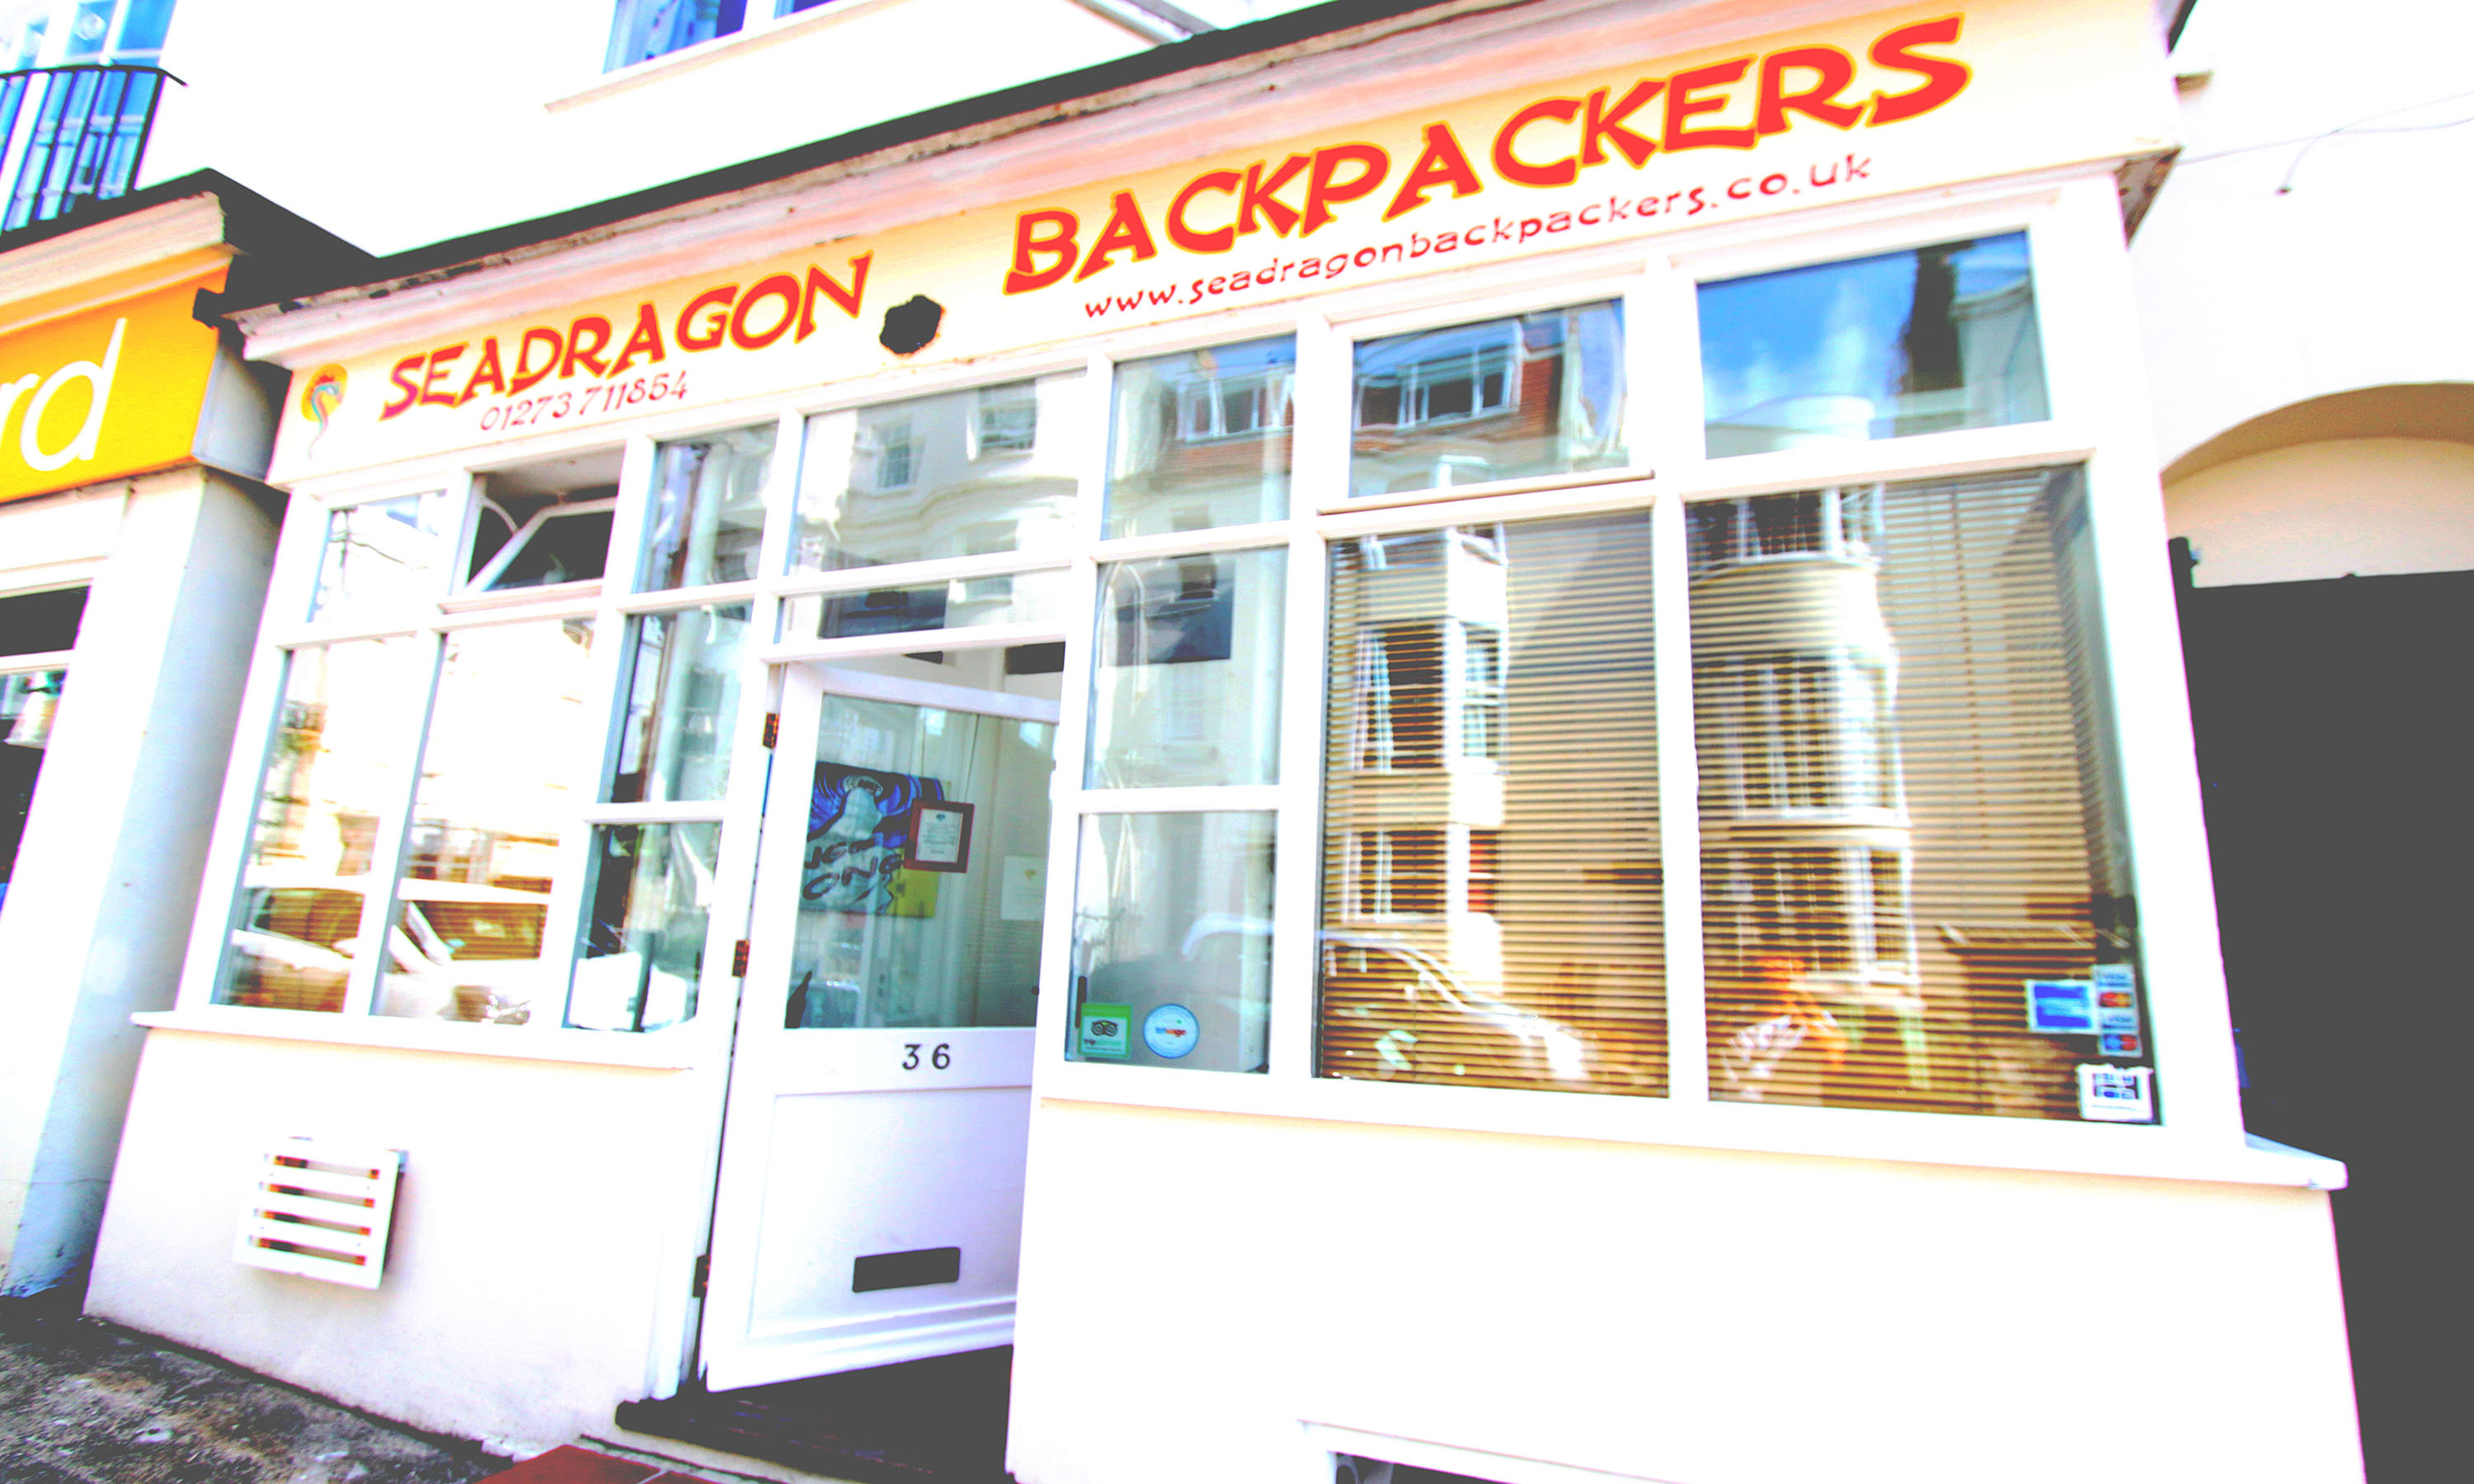 Seadragon Backpackers